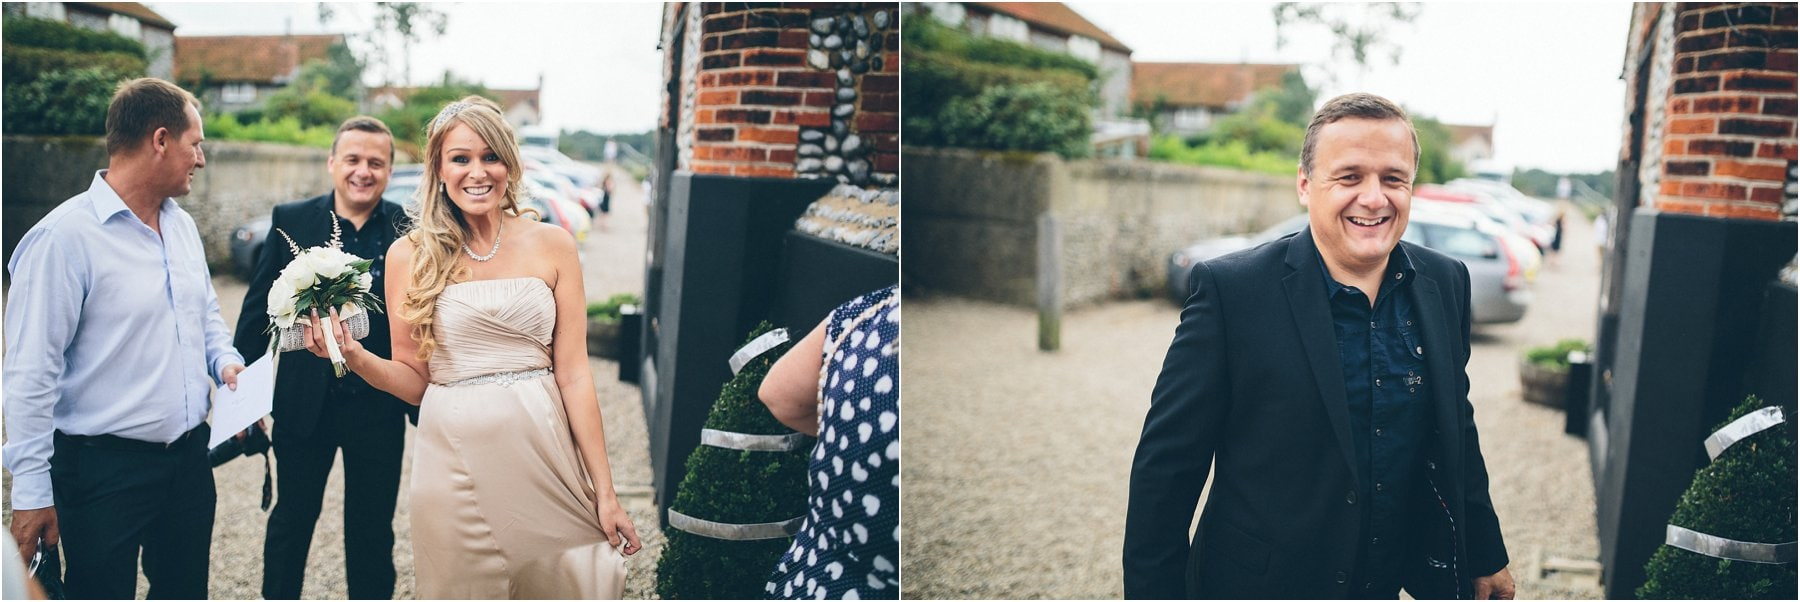 Cley_Windmill_Wedding_Photography_0080